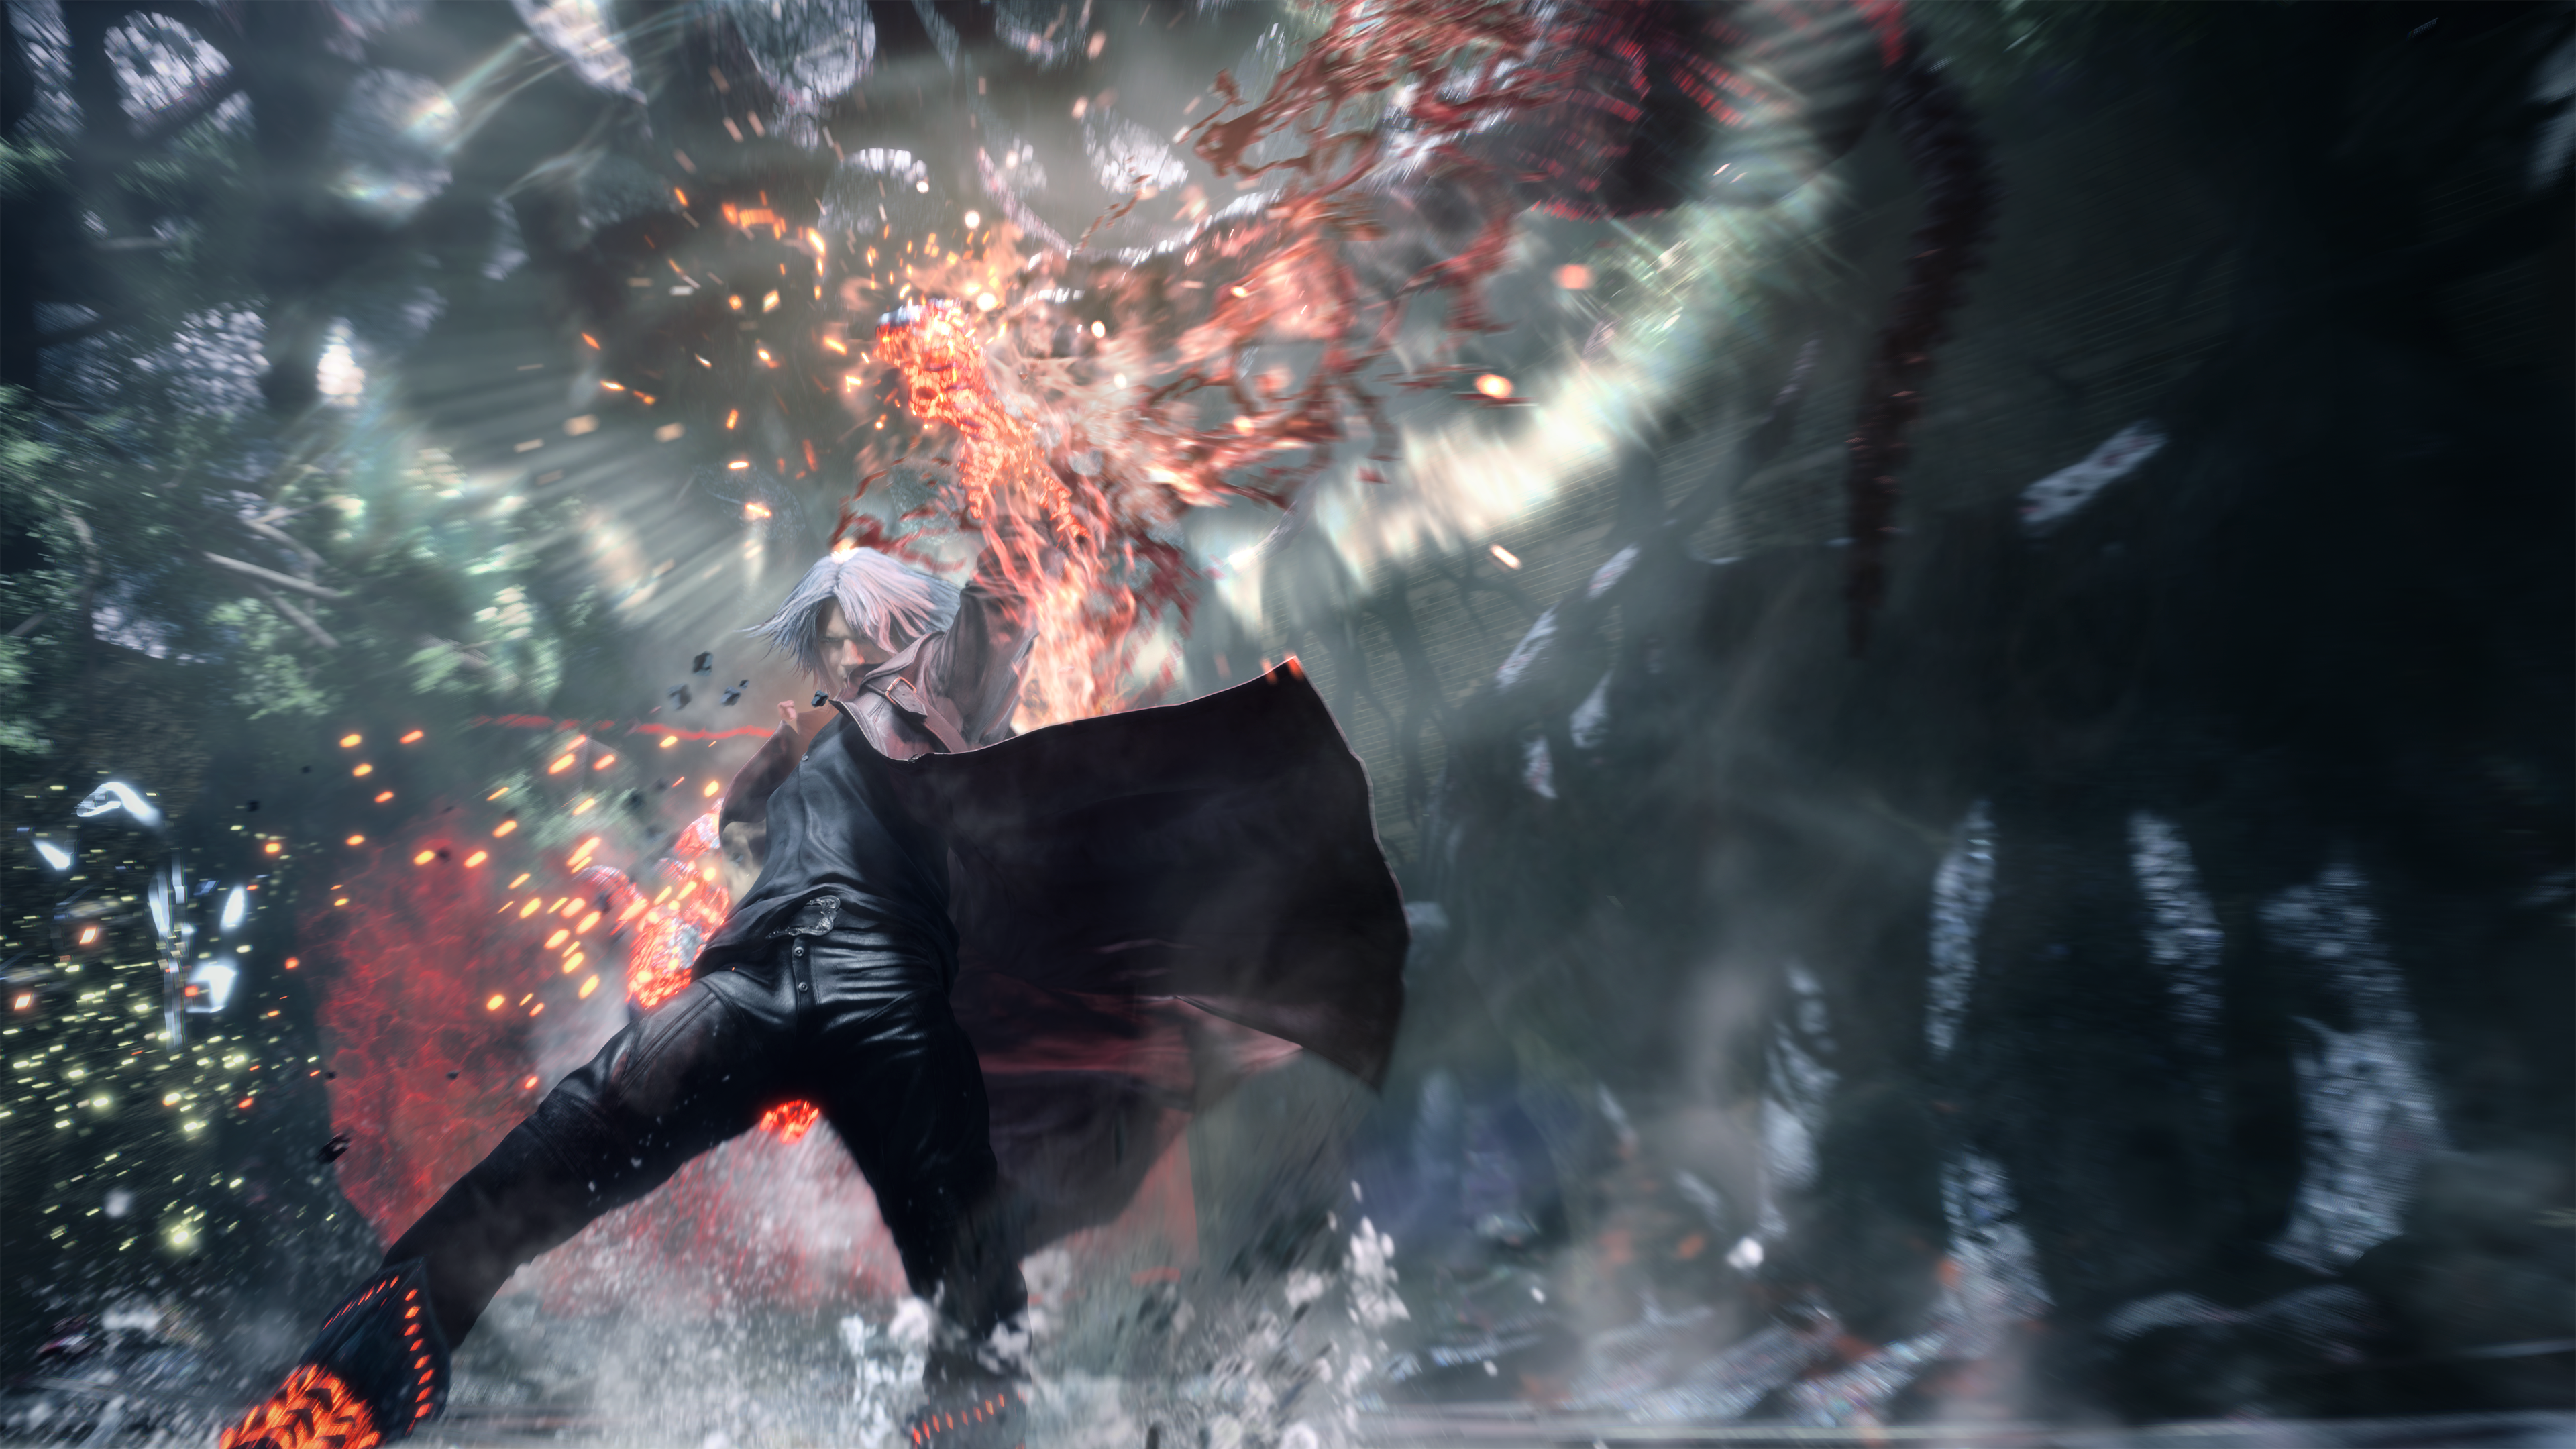 Devil May Cry 5 Dante 4k Ultra Hd Wallpaper Background